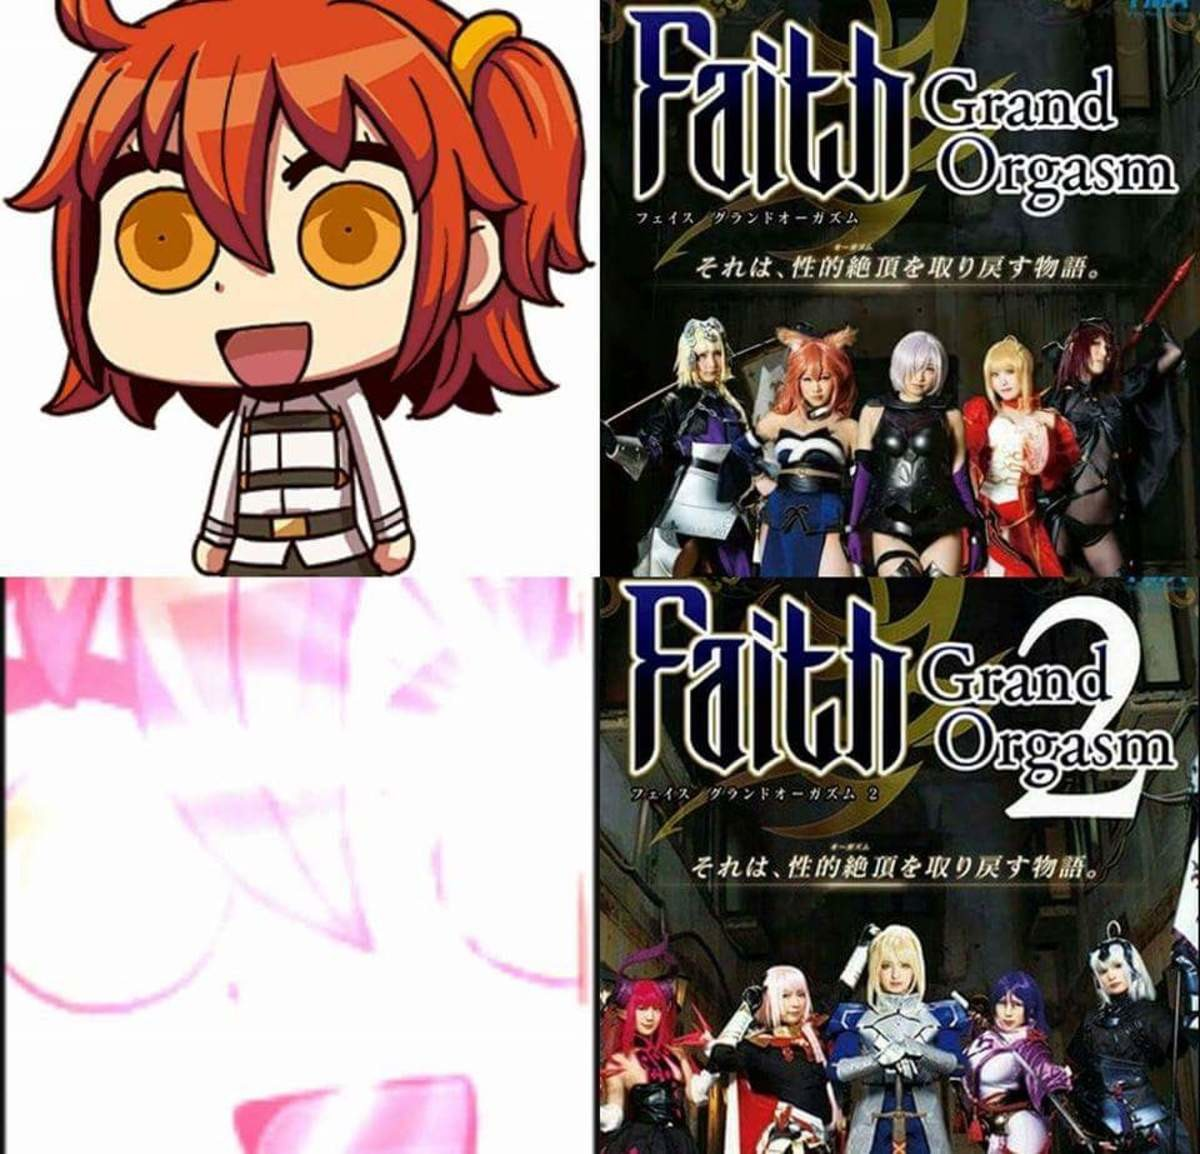 FGO 2 CONFIRMED!?. join list: 3DLewds (790 subs)Mention History join list:. Do I need to watch the first one to understand what's going on in the second?